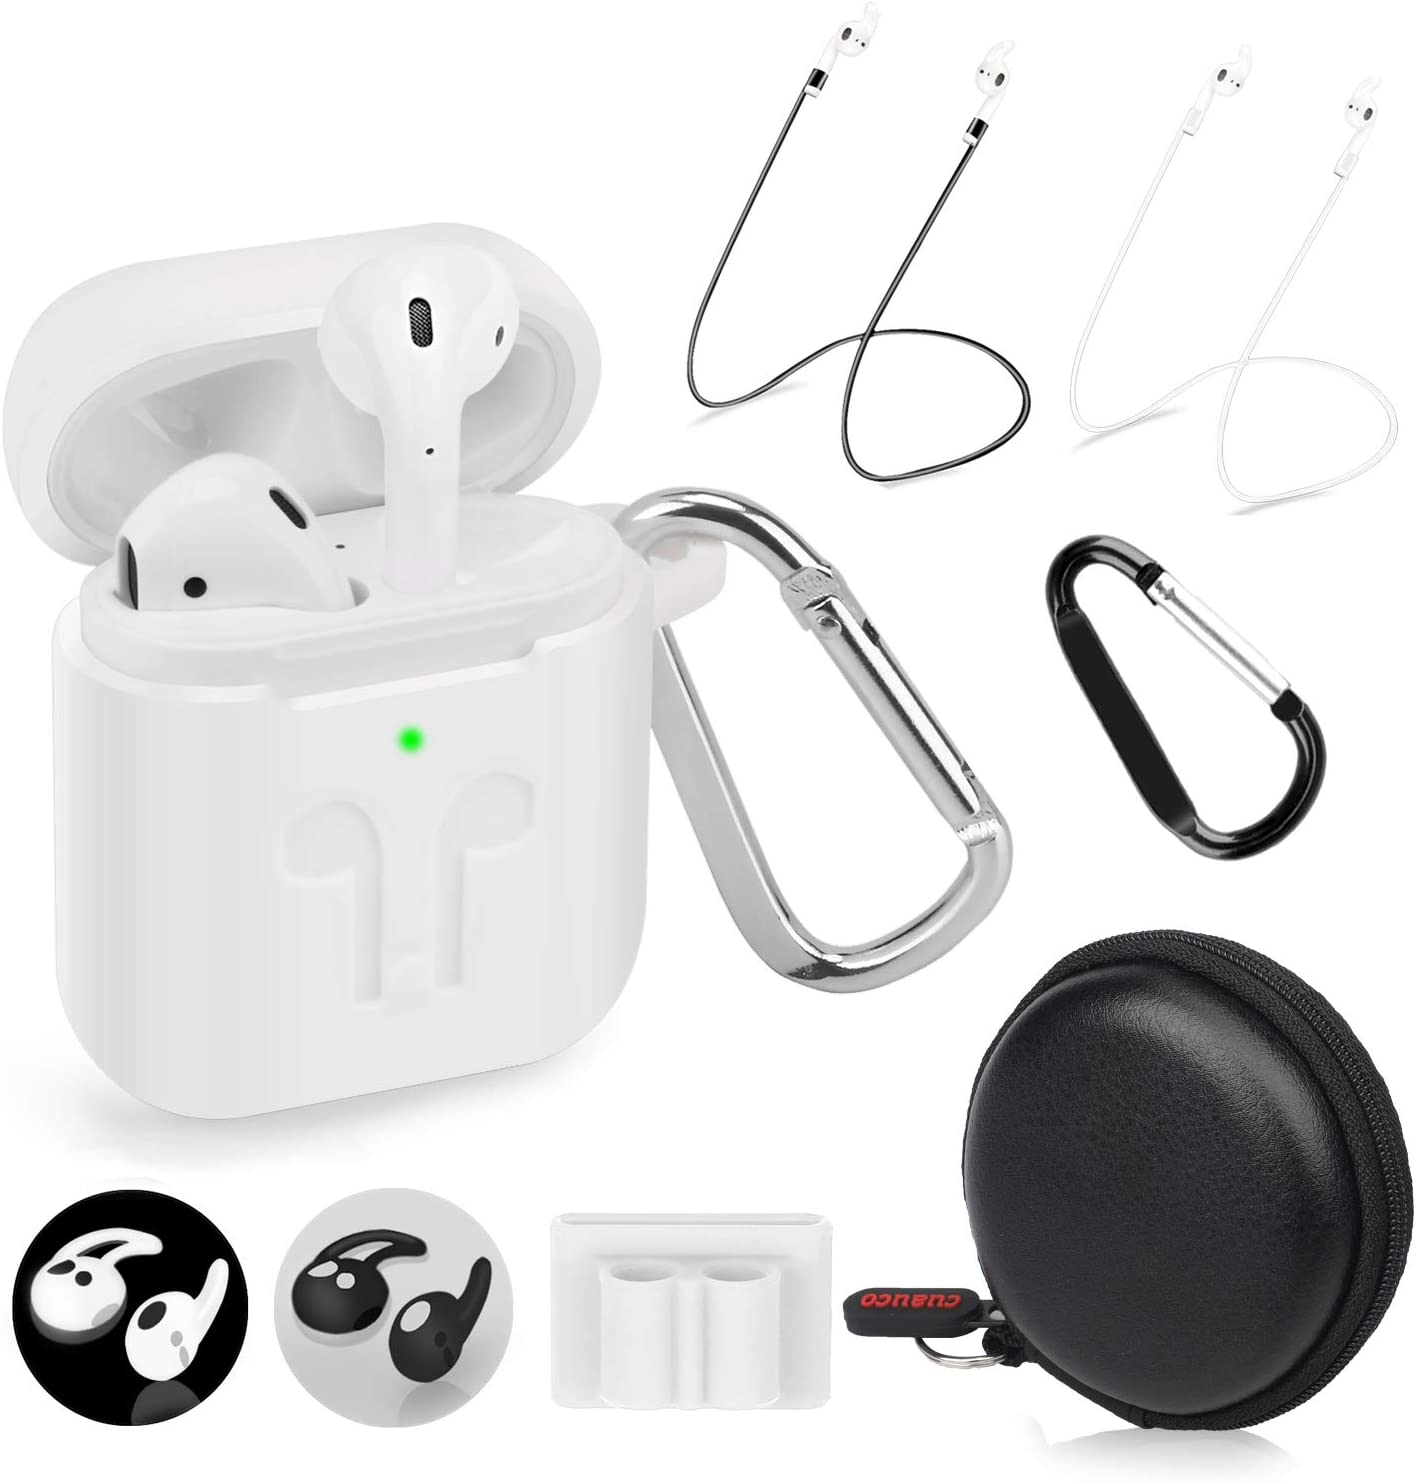 Cuauco 2020 Under blast sales Newest Airpods Under blast sales Case for Front LED 1 2 Visi